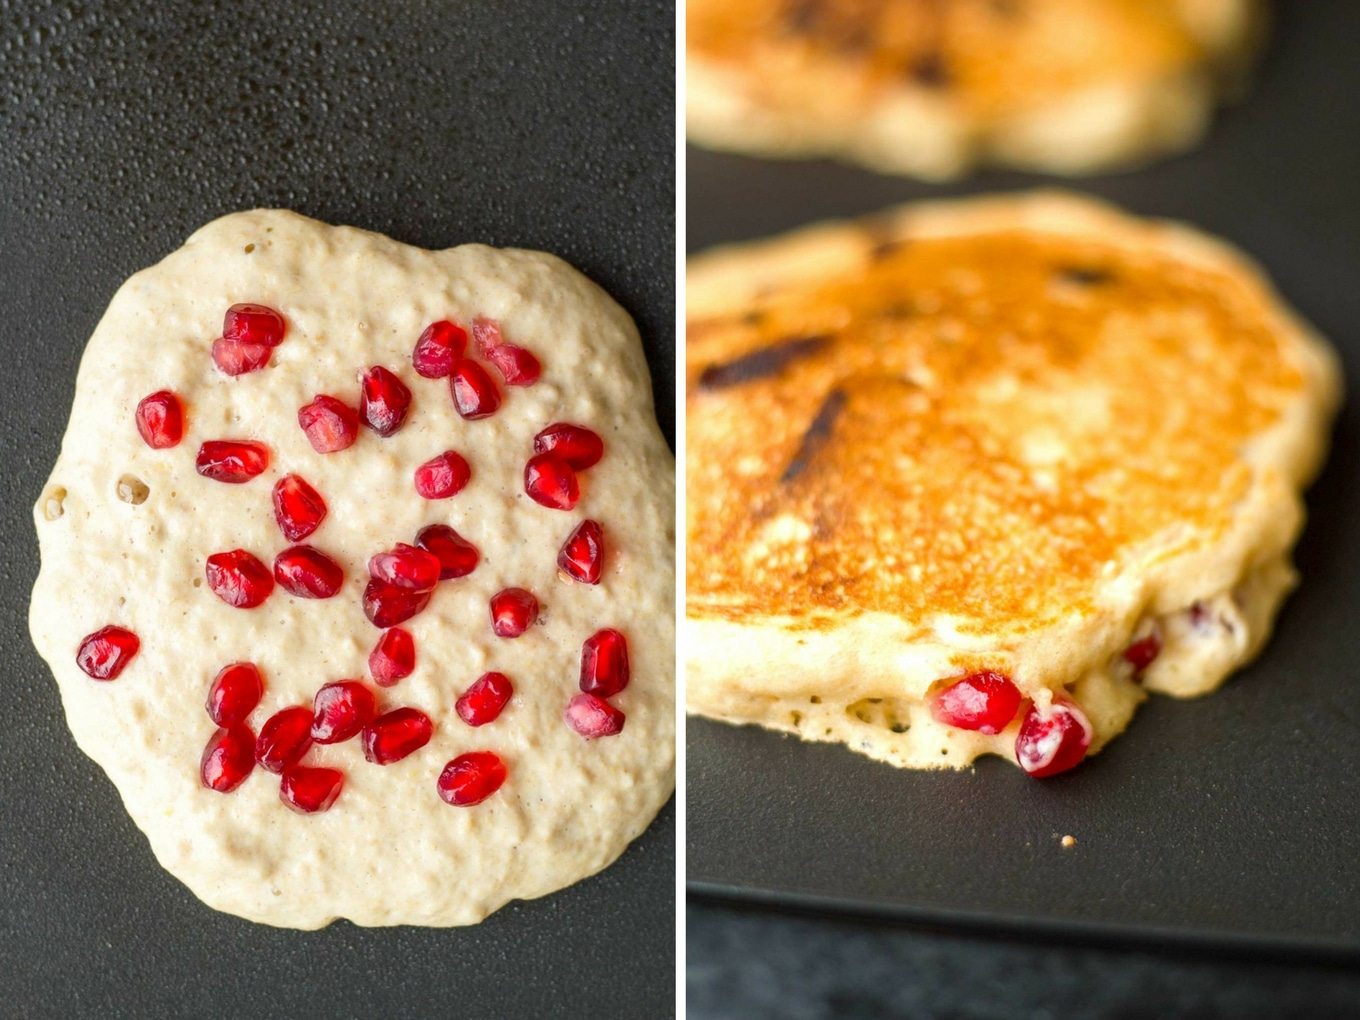 Pomegranate Chocolate Chip Pancakes with Pomegranate Syrup | Vegan, Oil-free, amazingly delicious! | https://eatwithinyourmeans.com